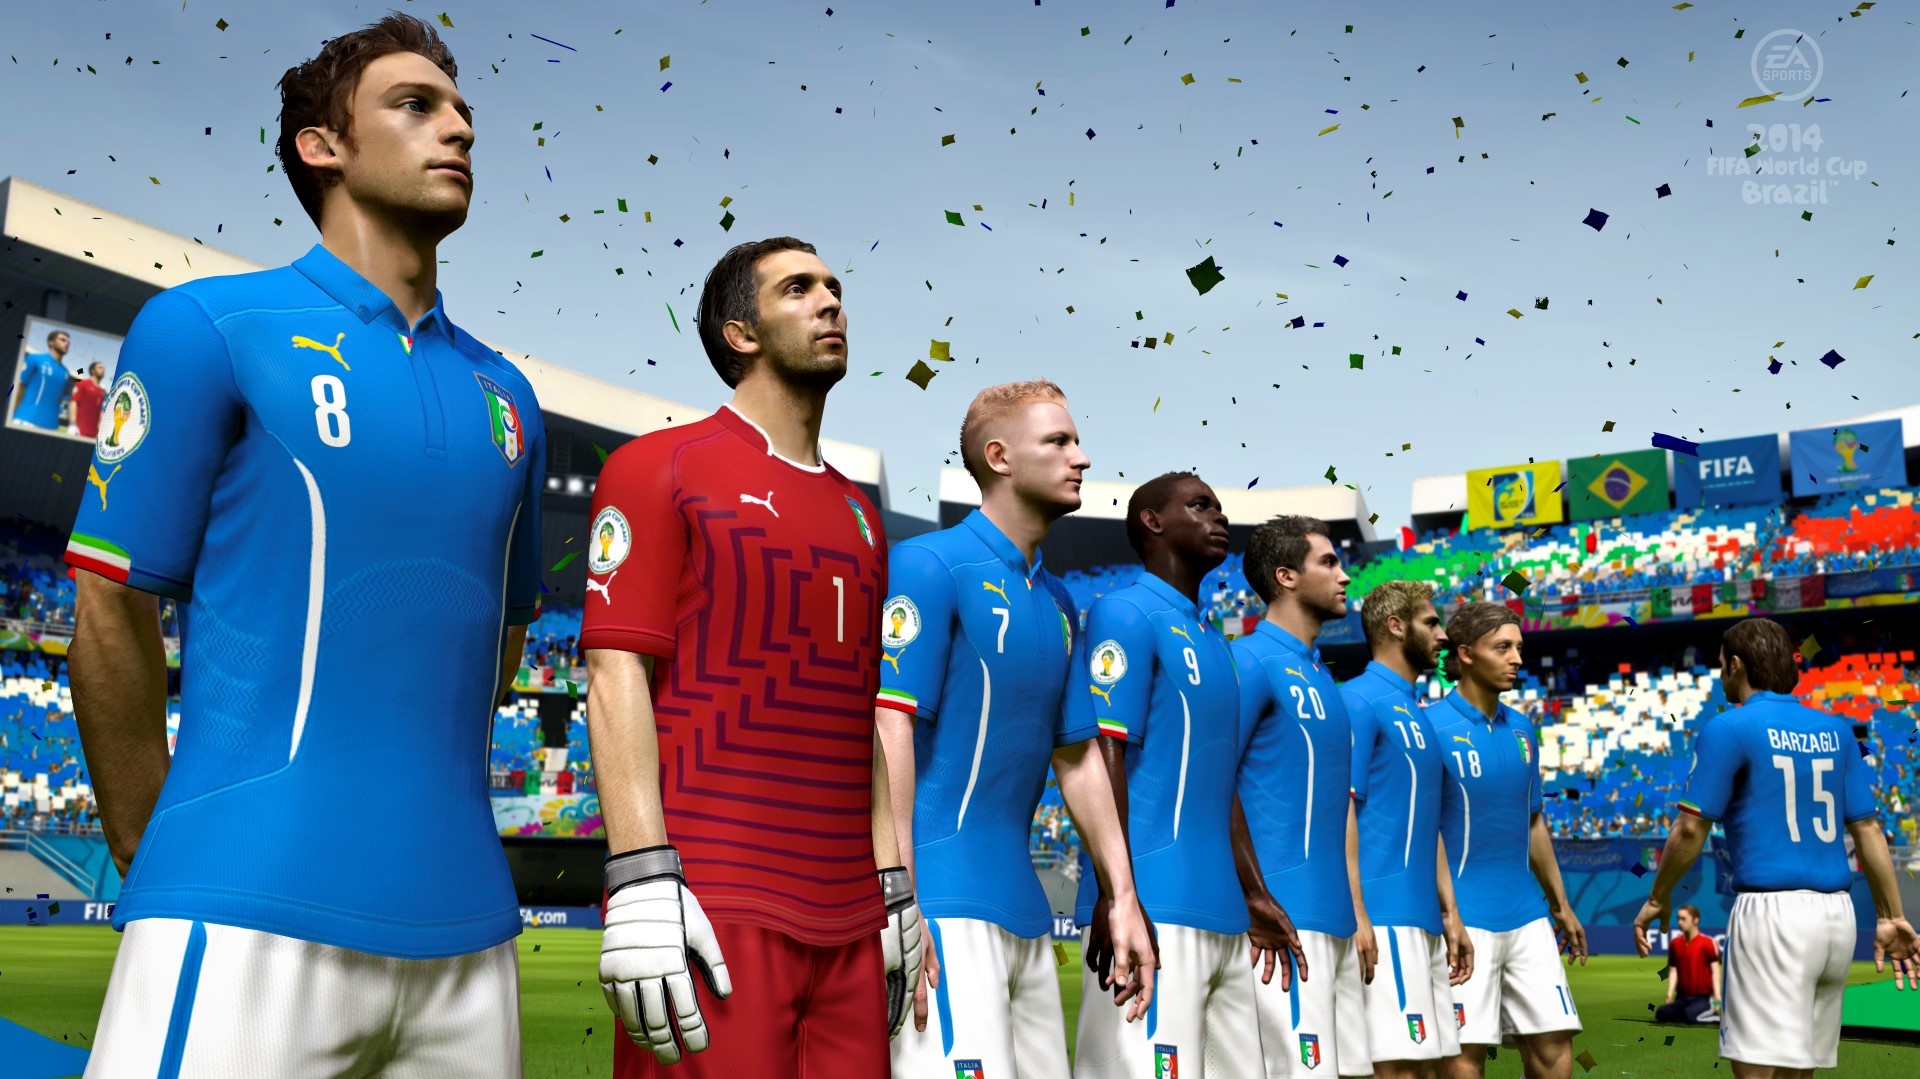 Fifa 2014 coupe du monde game - Jeux de foot coupe du monde 2014 ...